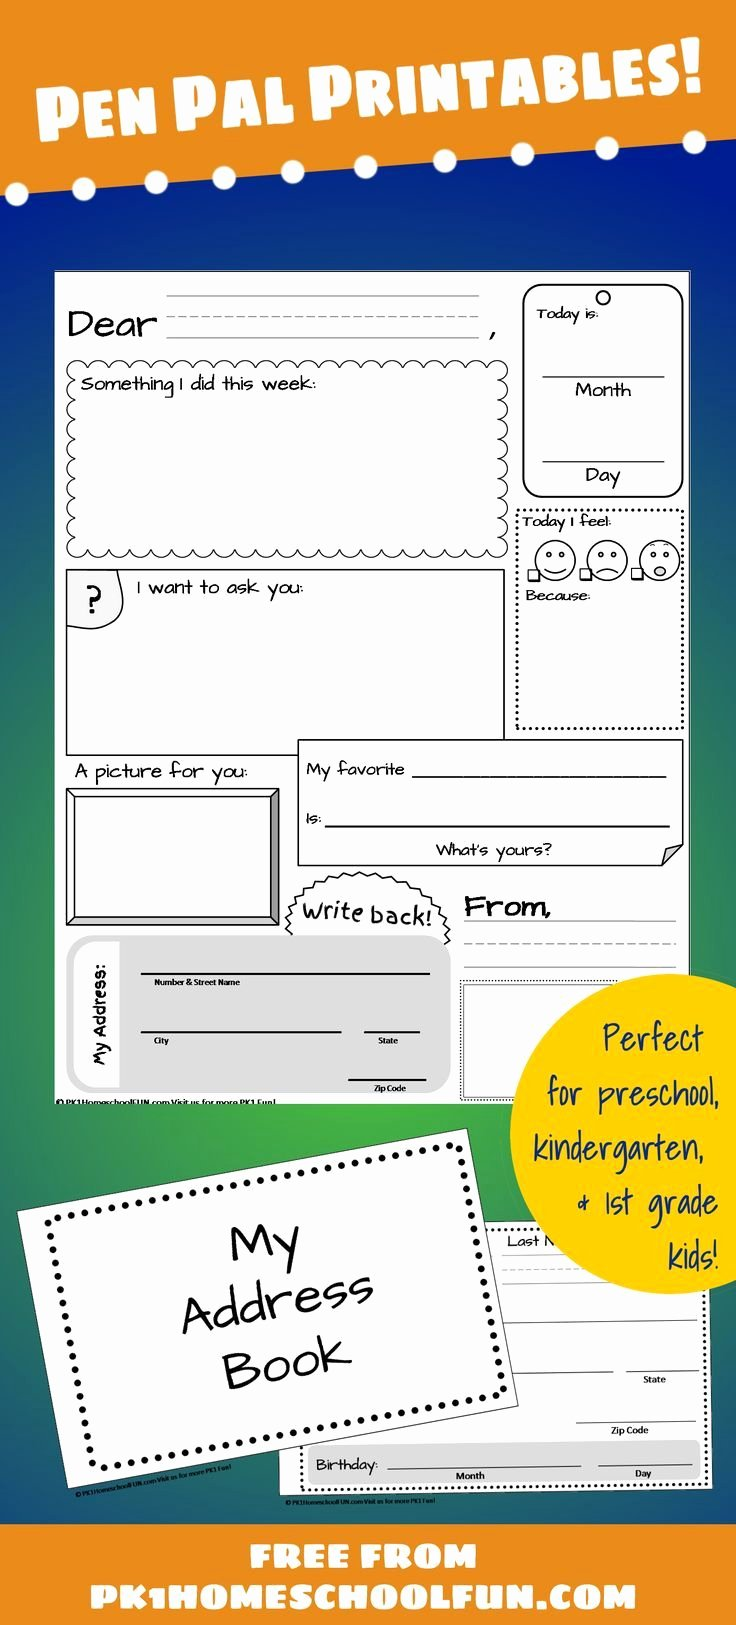 Pen Pal Letter Template Inspirational Free Pen Pal Printables for Kids Handwriting